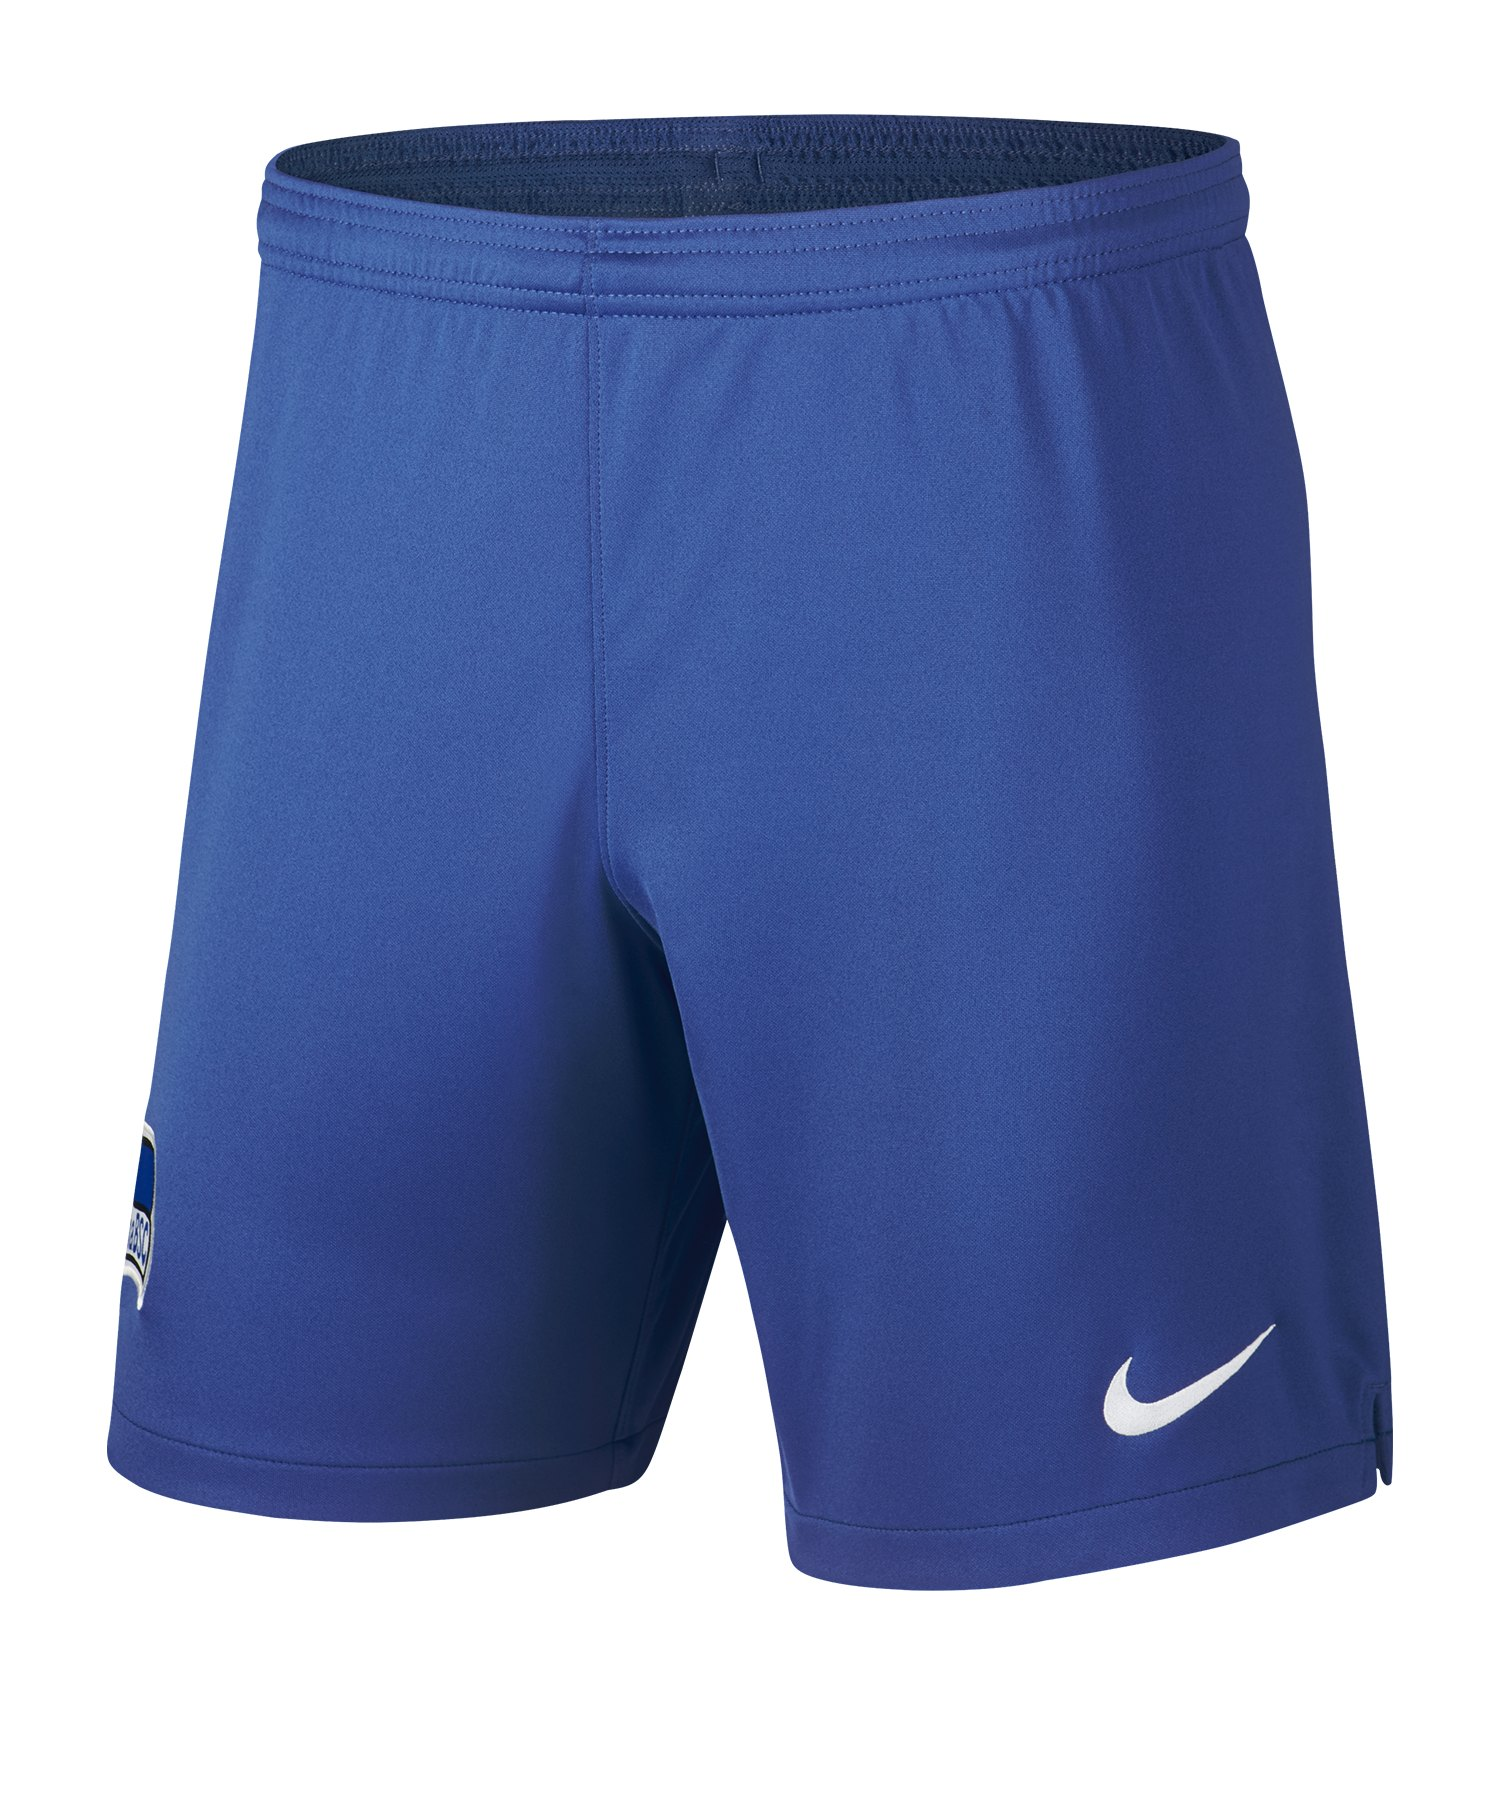 Nike Hertha BSC Berlin Short Home 19/20 F497 - blau